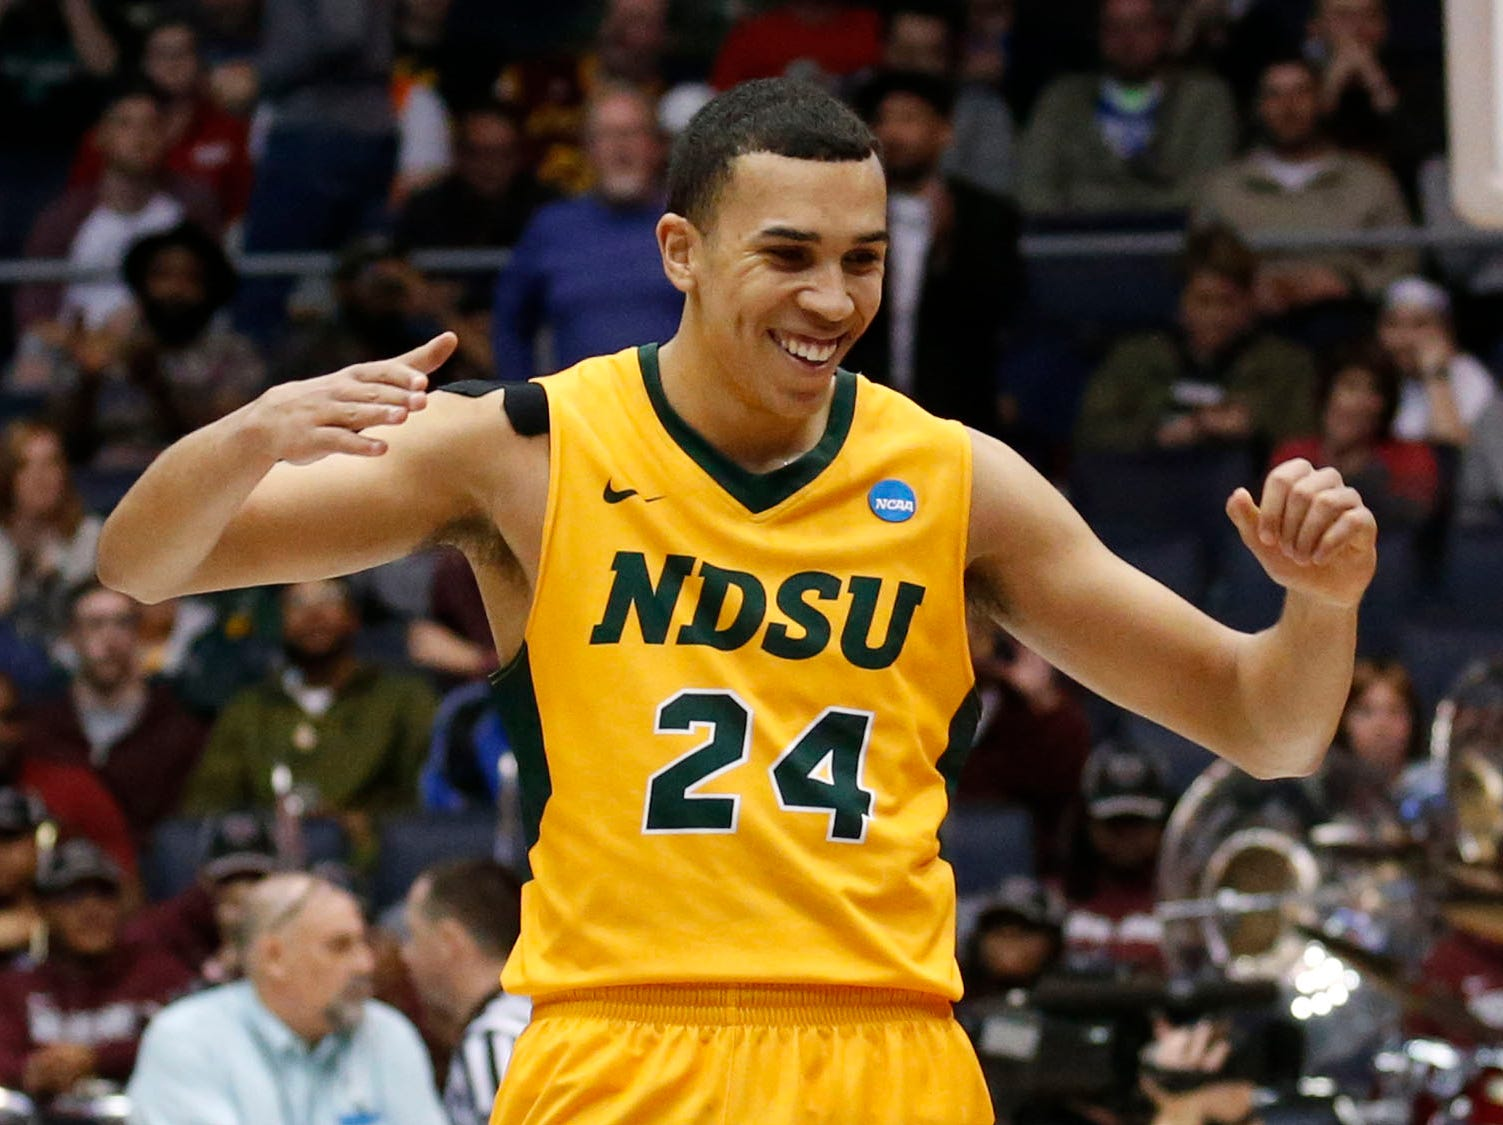 North Dakota State Bison guard Tyson Ward (24) celebrates defeating the North Carolina Central Eagles.